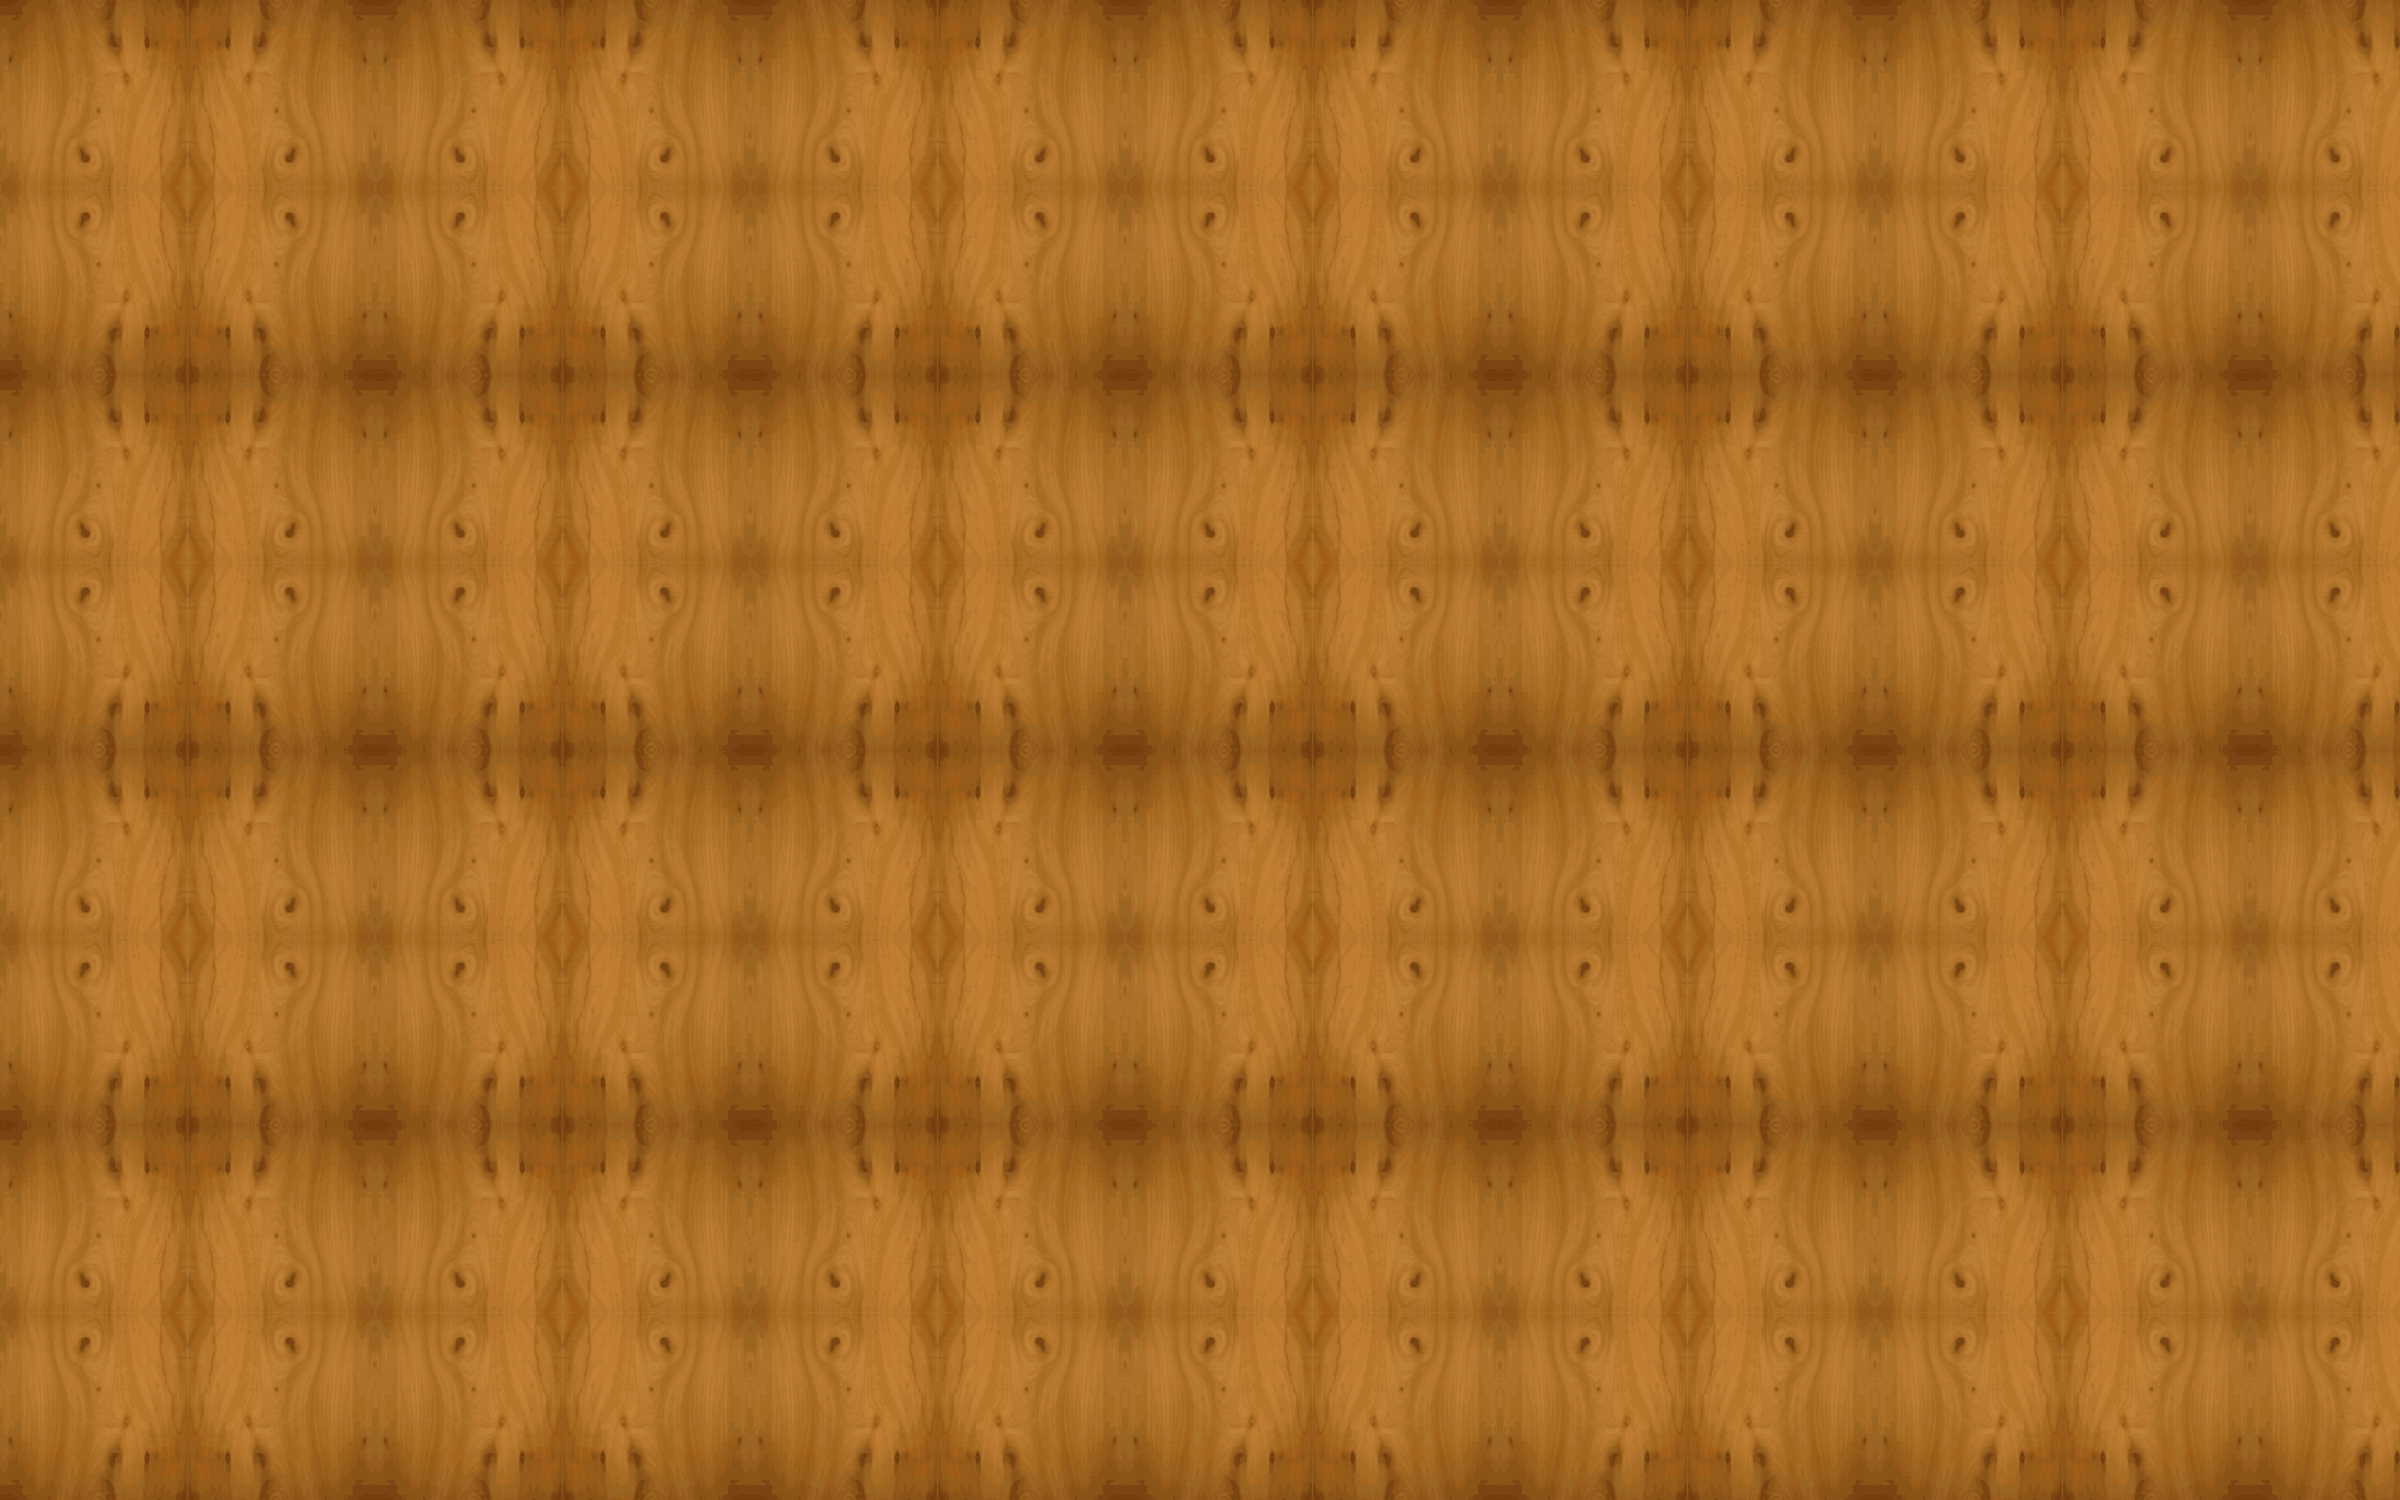 Wood Floor Texture File Size Reduced (Yamachem's Original) by GDJ